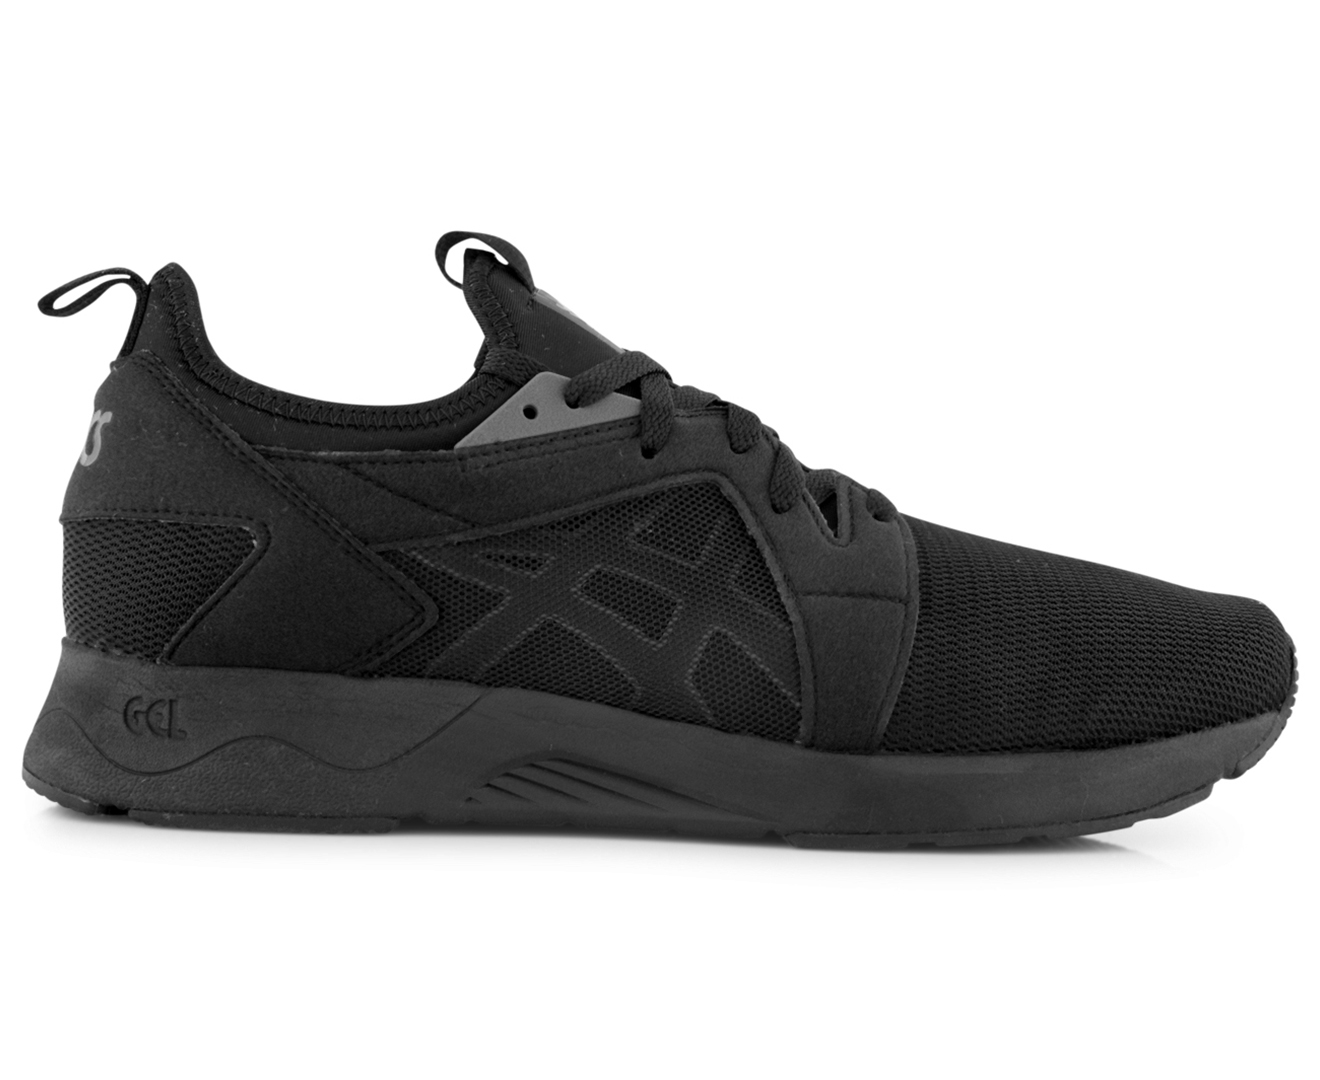 990b1623b03b6a ASICS Tiger Unisex GEL-Lyte V RB Trainer - Black | Catch.com.au